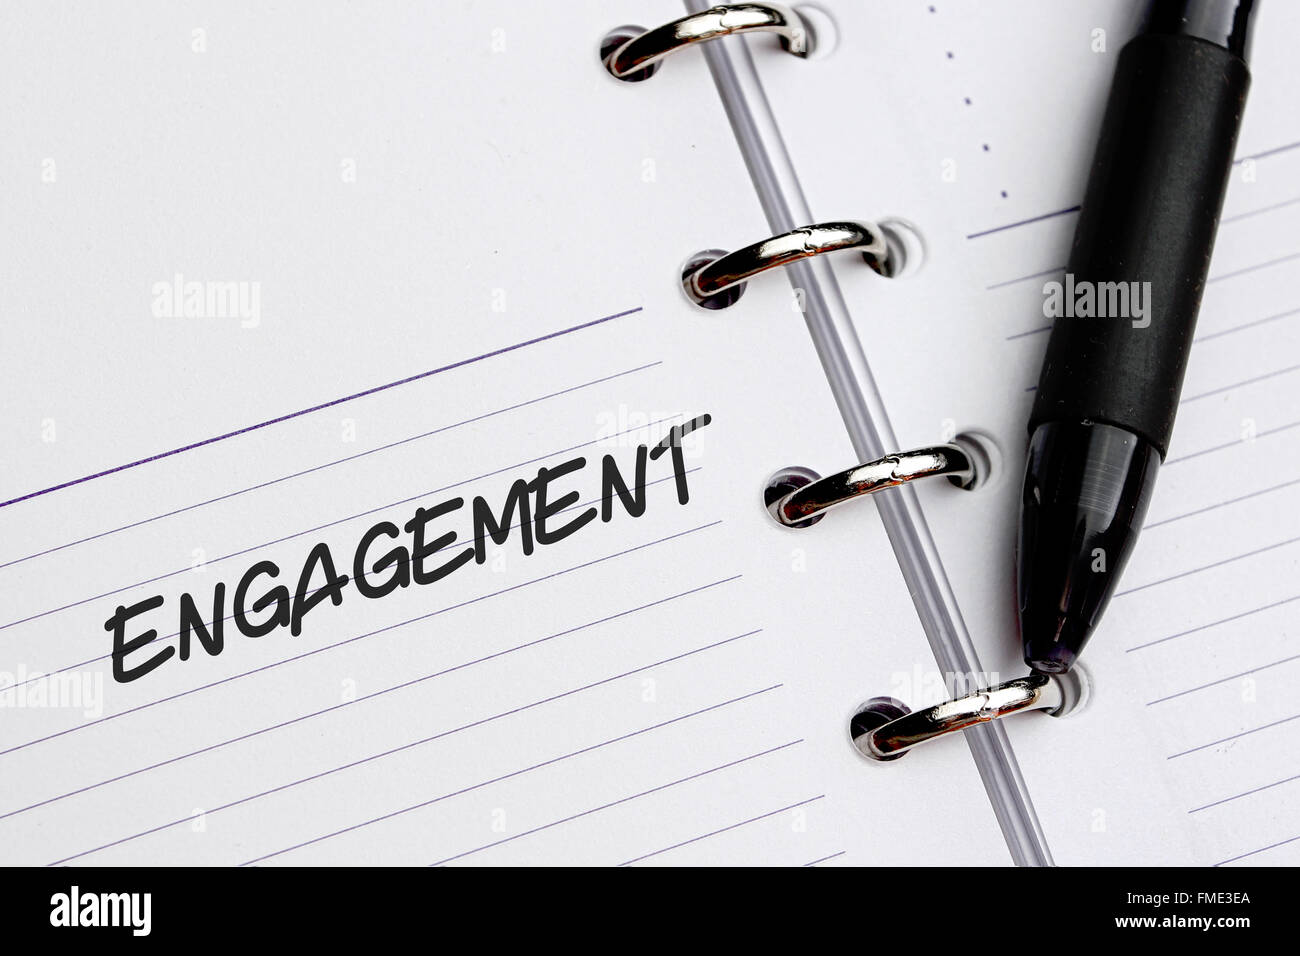 Engagement word written on paper - Stock Image